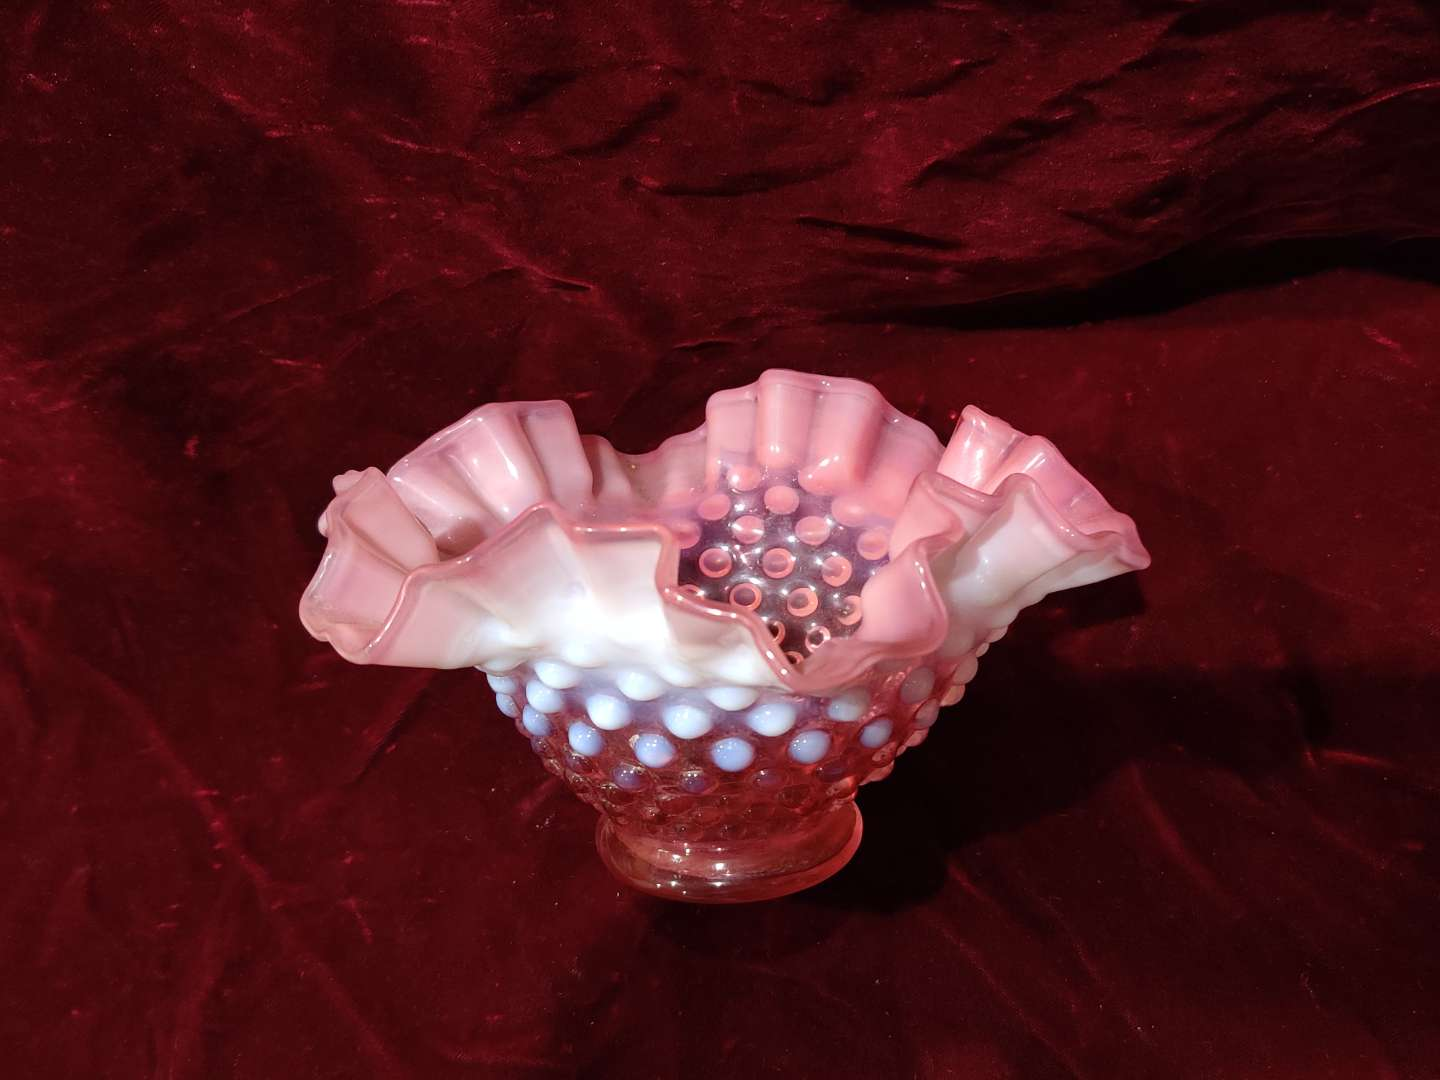 # 50 Fenton ruffled edge cranberry hobnail opalescent bowl 7 in wide in excellent condition